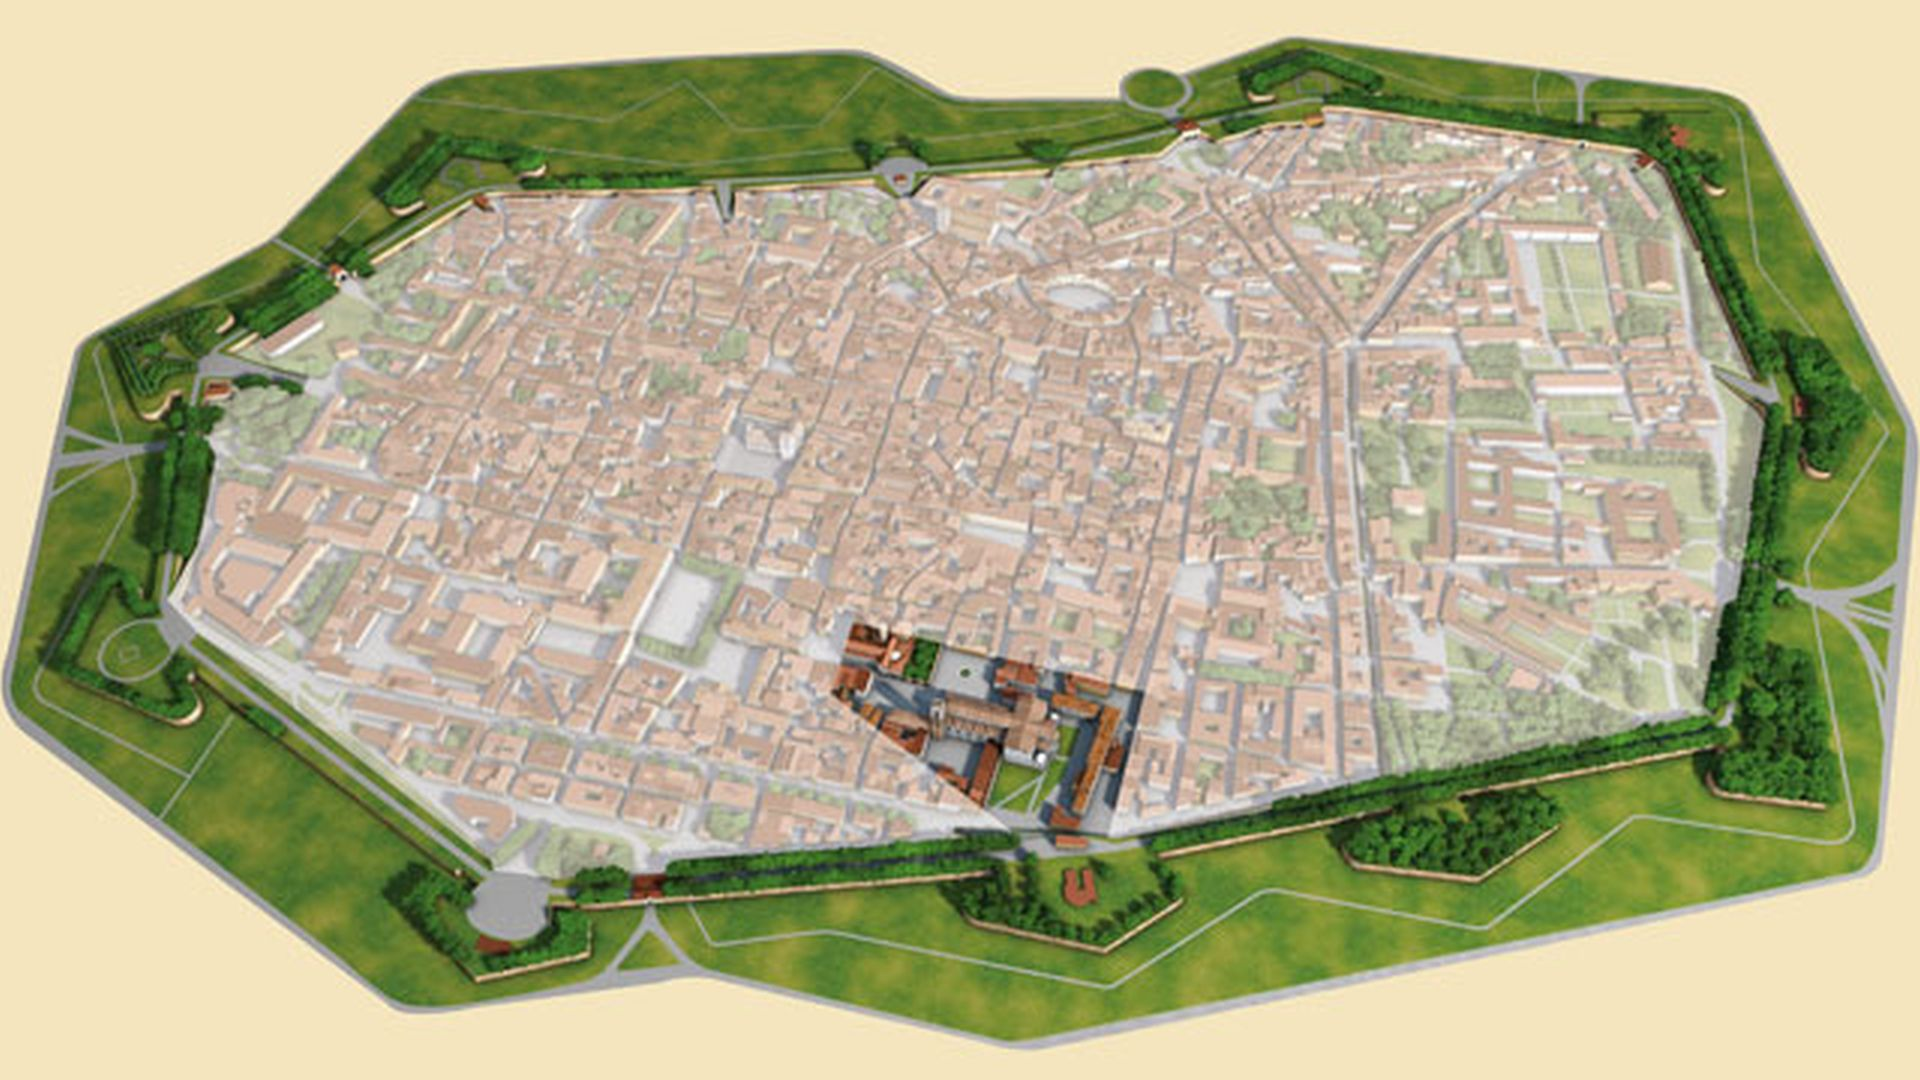 Map of Lucca with spotlight on the southern side